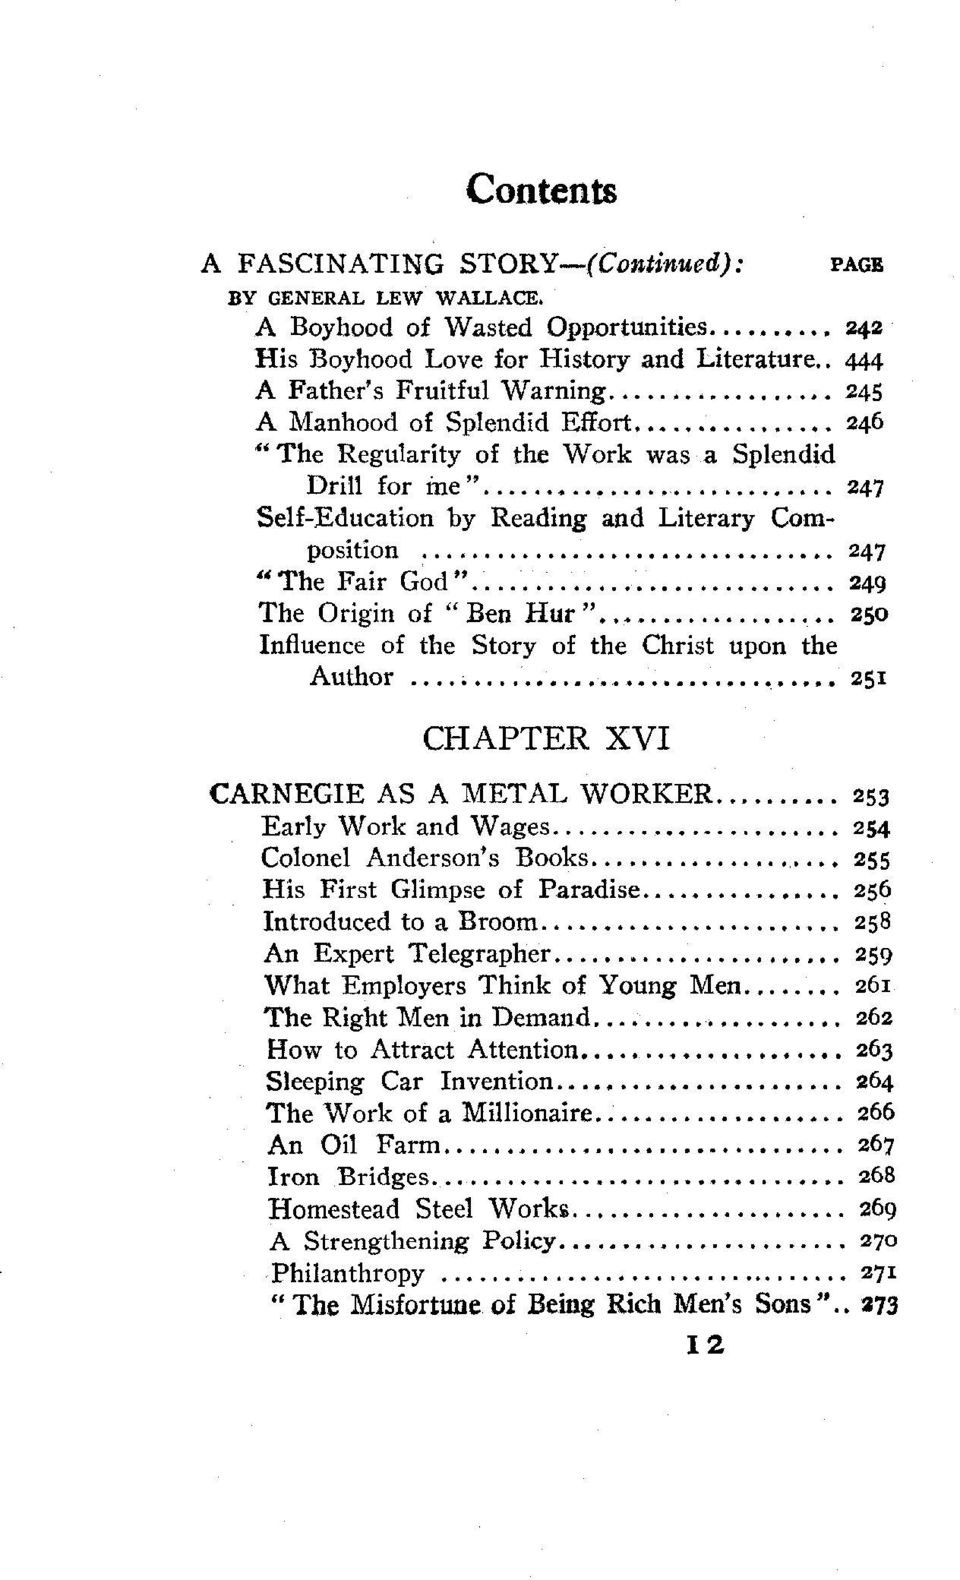 "............................ 249 The Origin of ""Ben Hue""................. 250 Influence of the Story of the Christ upon the Author............... 251 CHAPTER XVI CARNEGIE AS A METAL WORKER 253 Early Work and Wages."